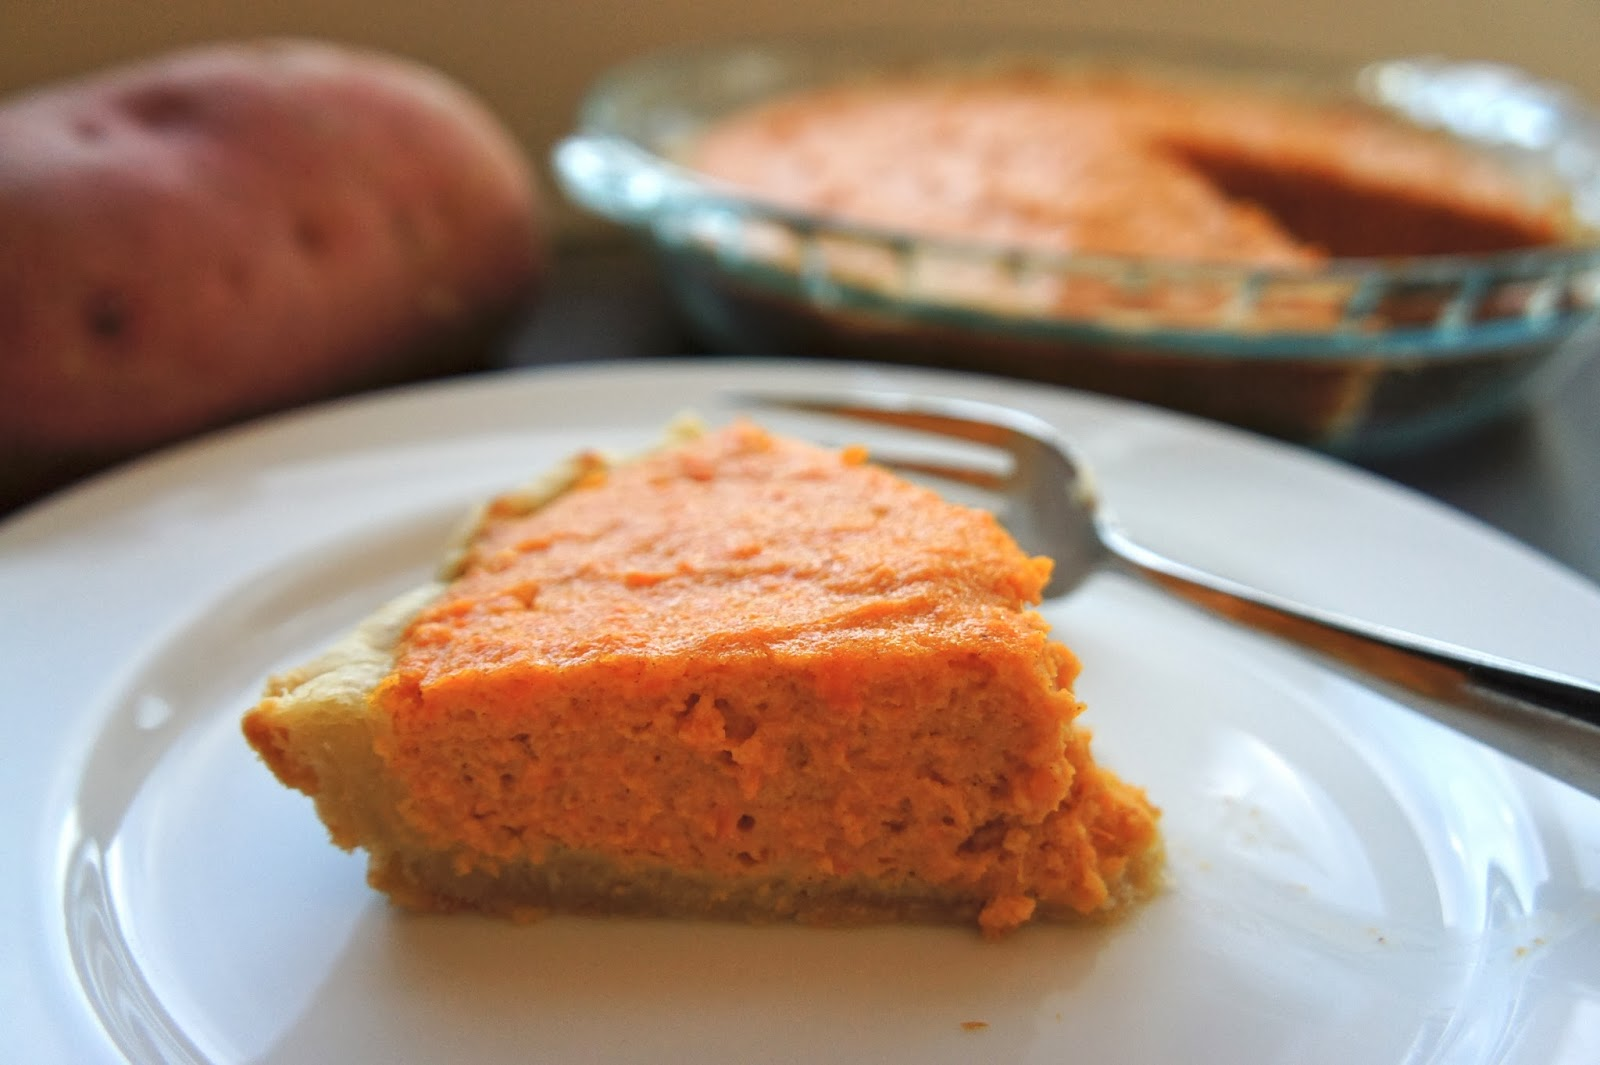 changtilly: Sweet Potato Buttermilk Pie